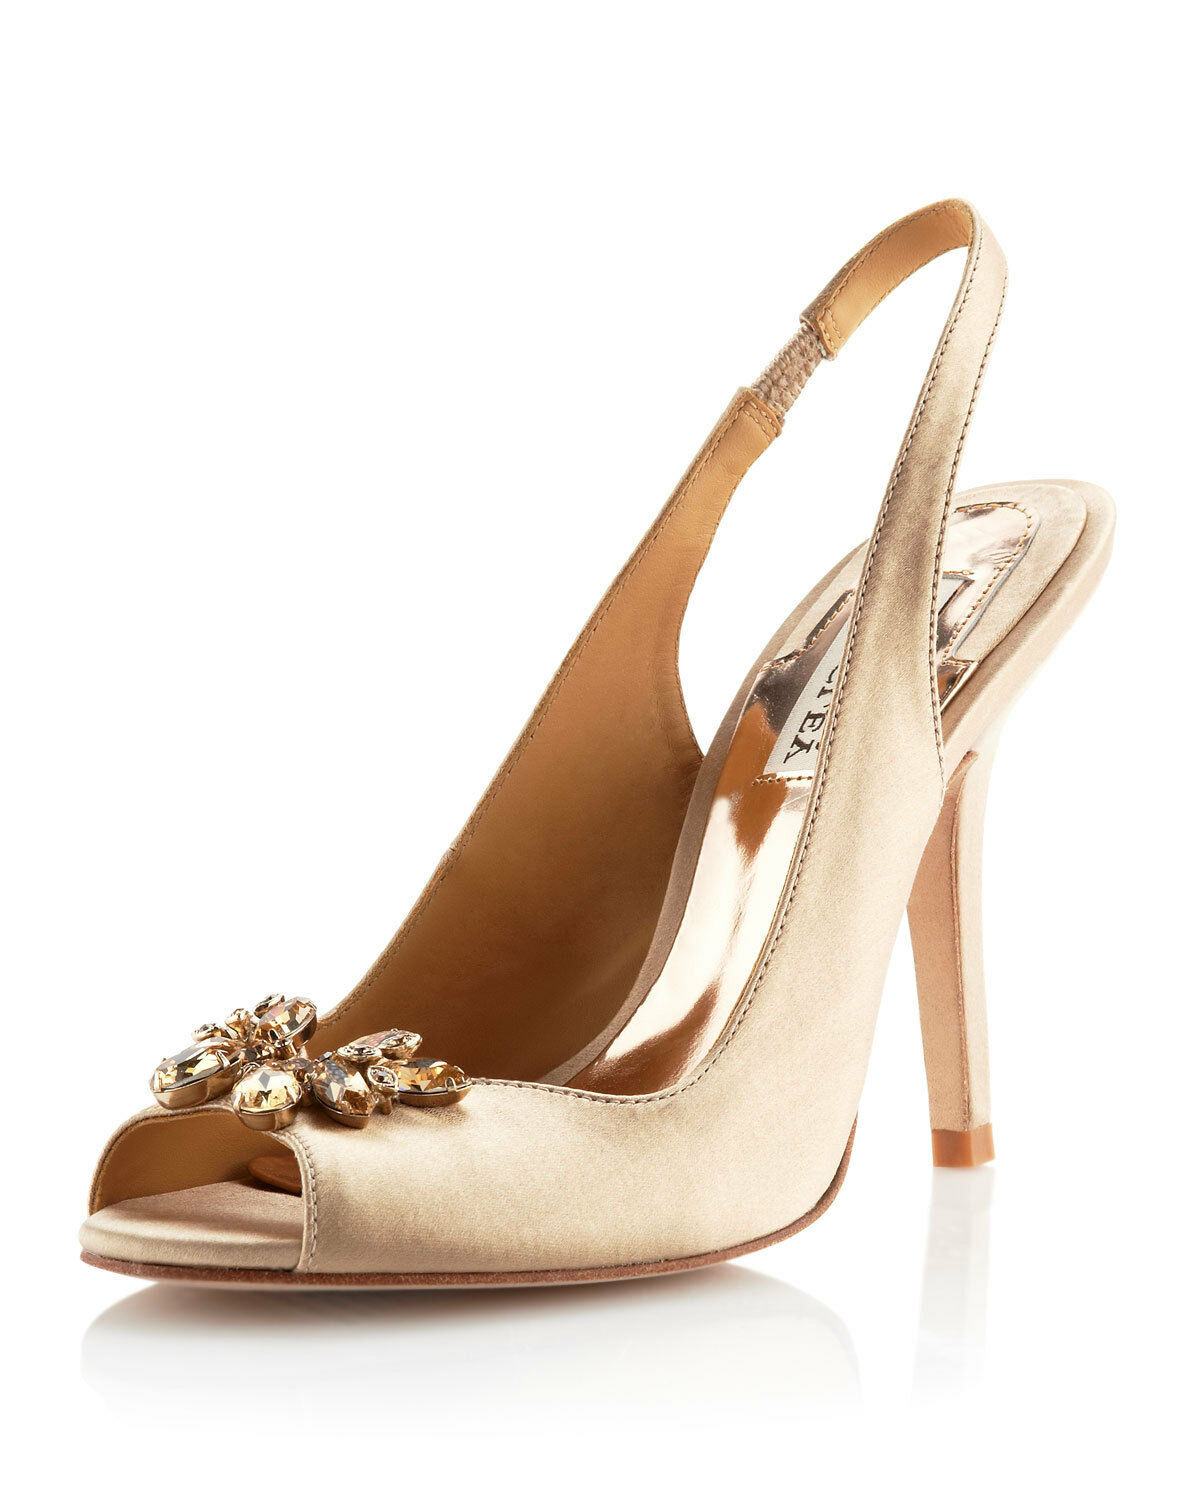 Badgley Mischka Sally slingback sandals open toe schuhe schuhe schuhe Nude Natural 6,5 NEW 0236b1